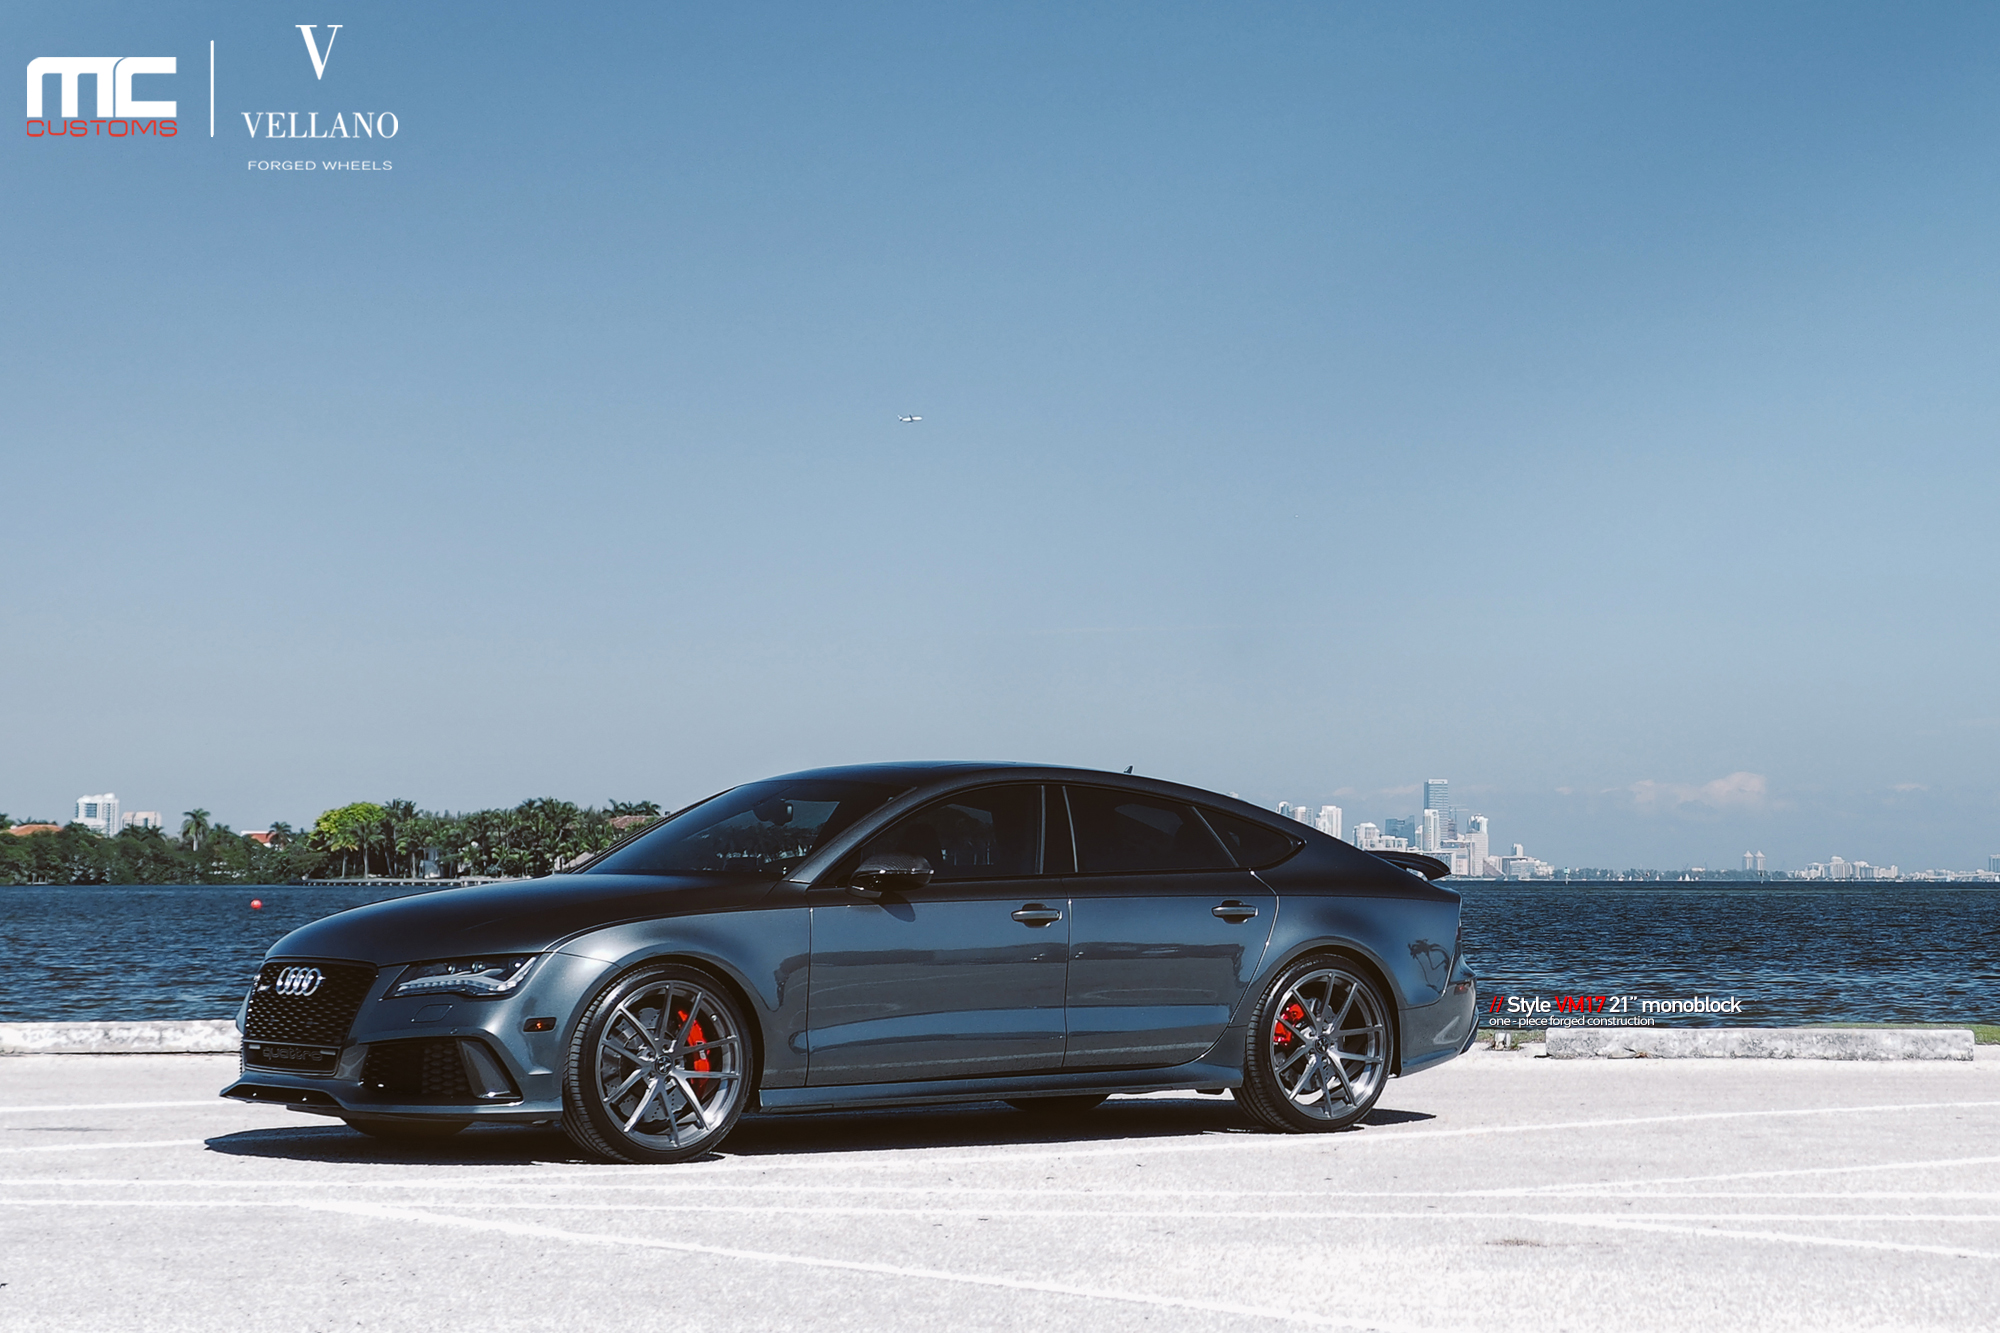 Lowrider Rims And Tires >> 2014 Audi RS7 On Vellano Wheels By MC Customs - Rides Magazine